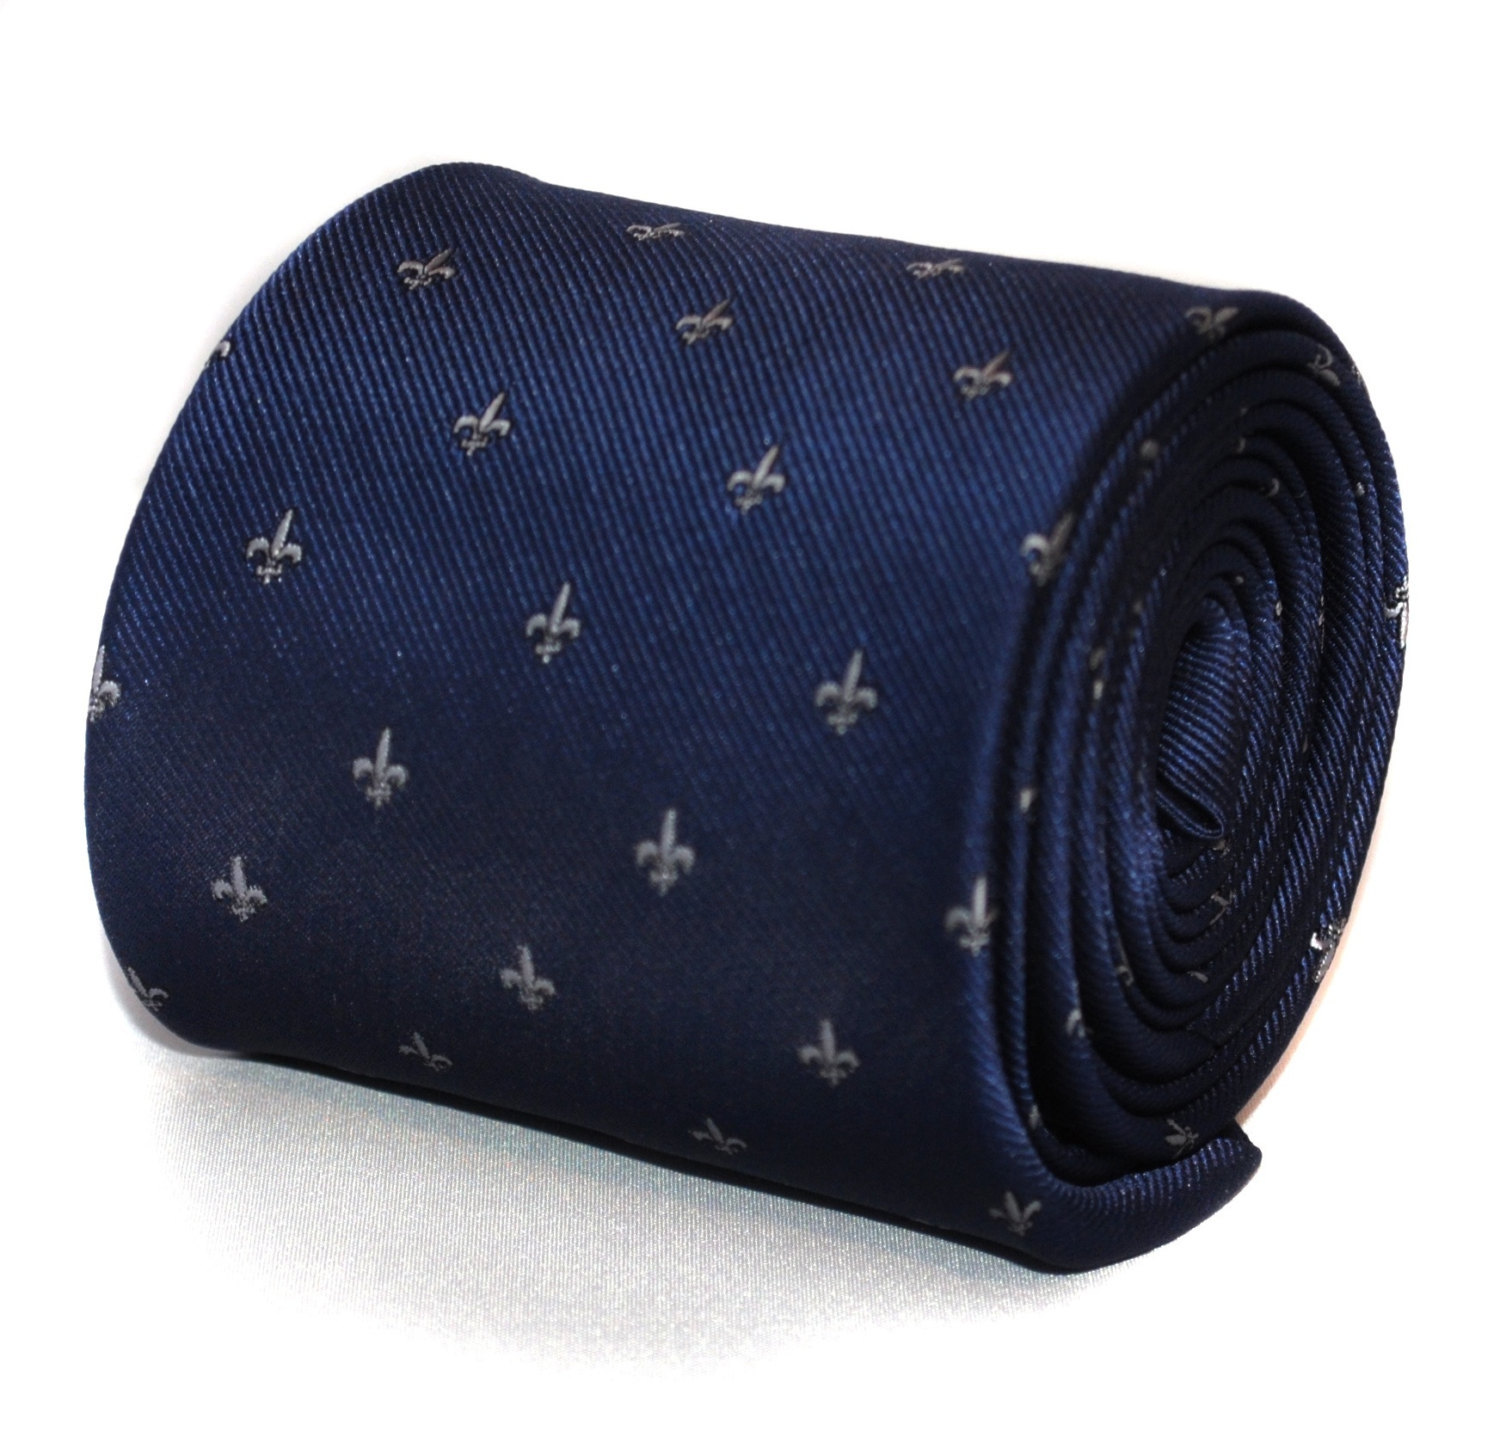 navy blue tie with fleur de lis (lys) design with signature floral design to rea